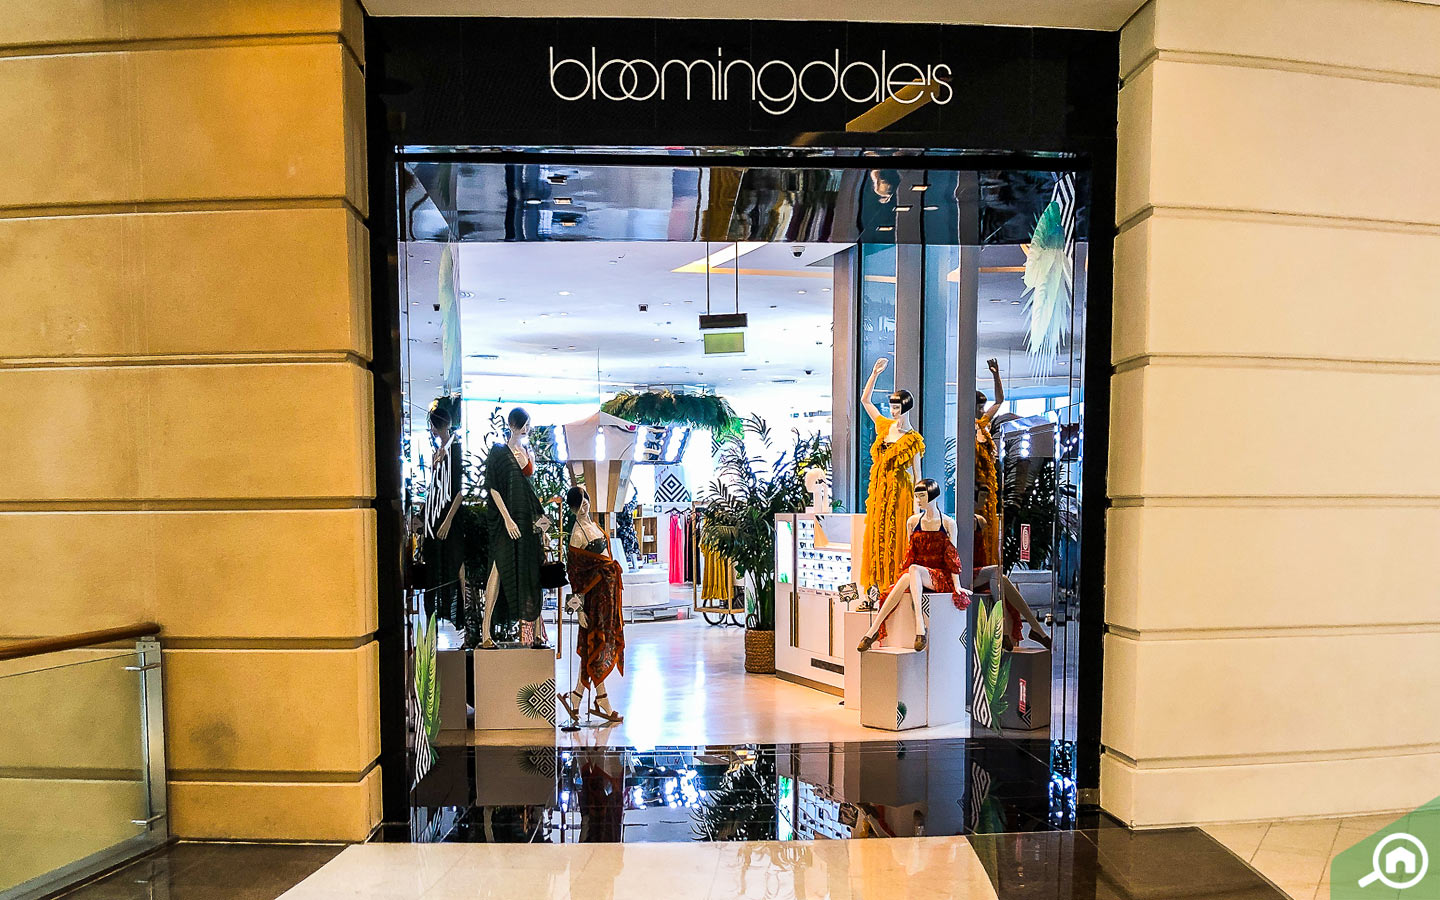 Bloomingdales shop Dubai Mall